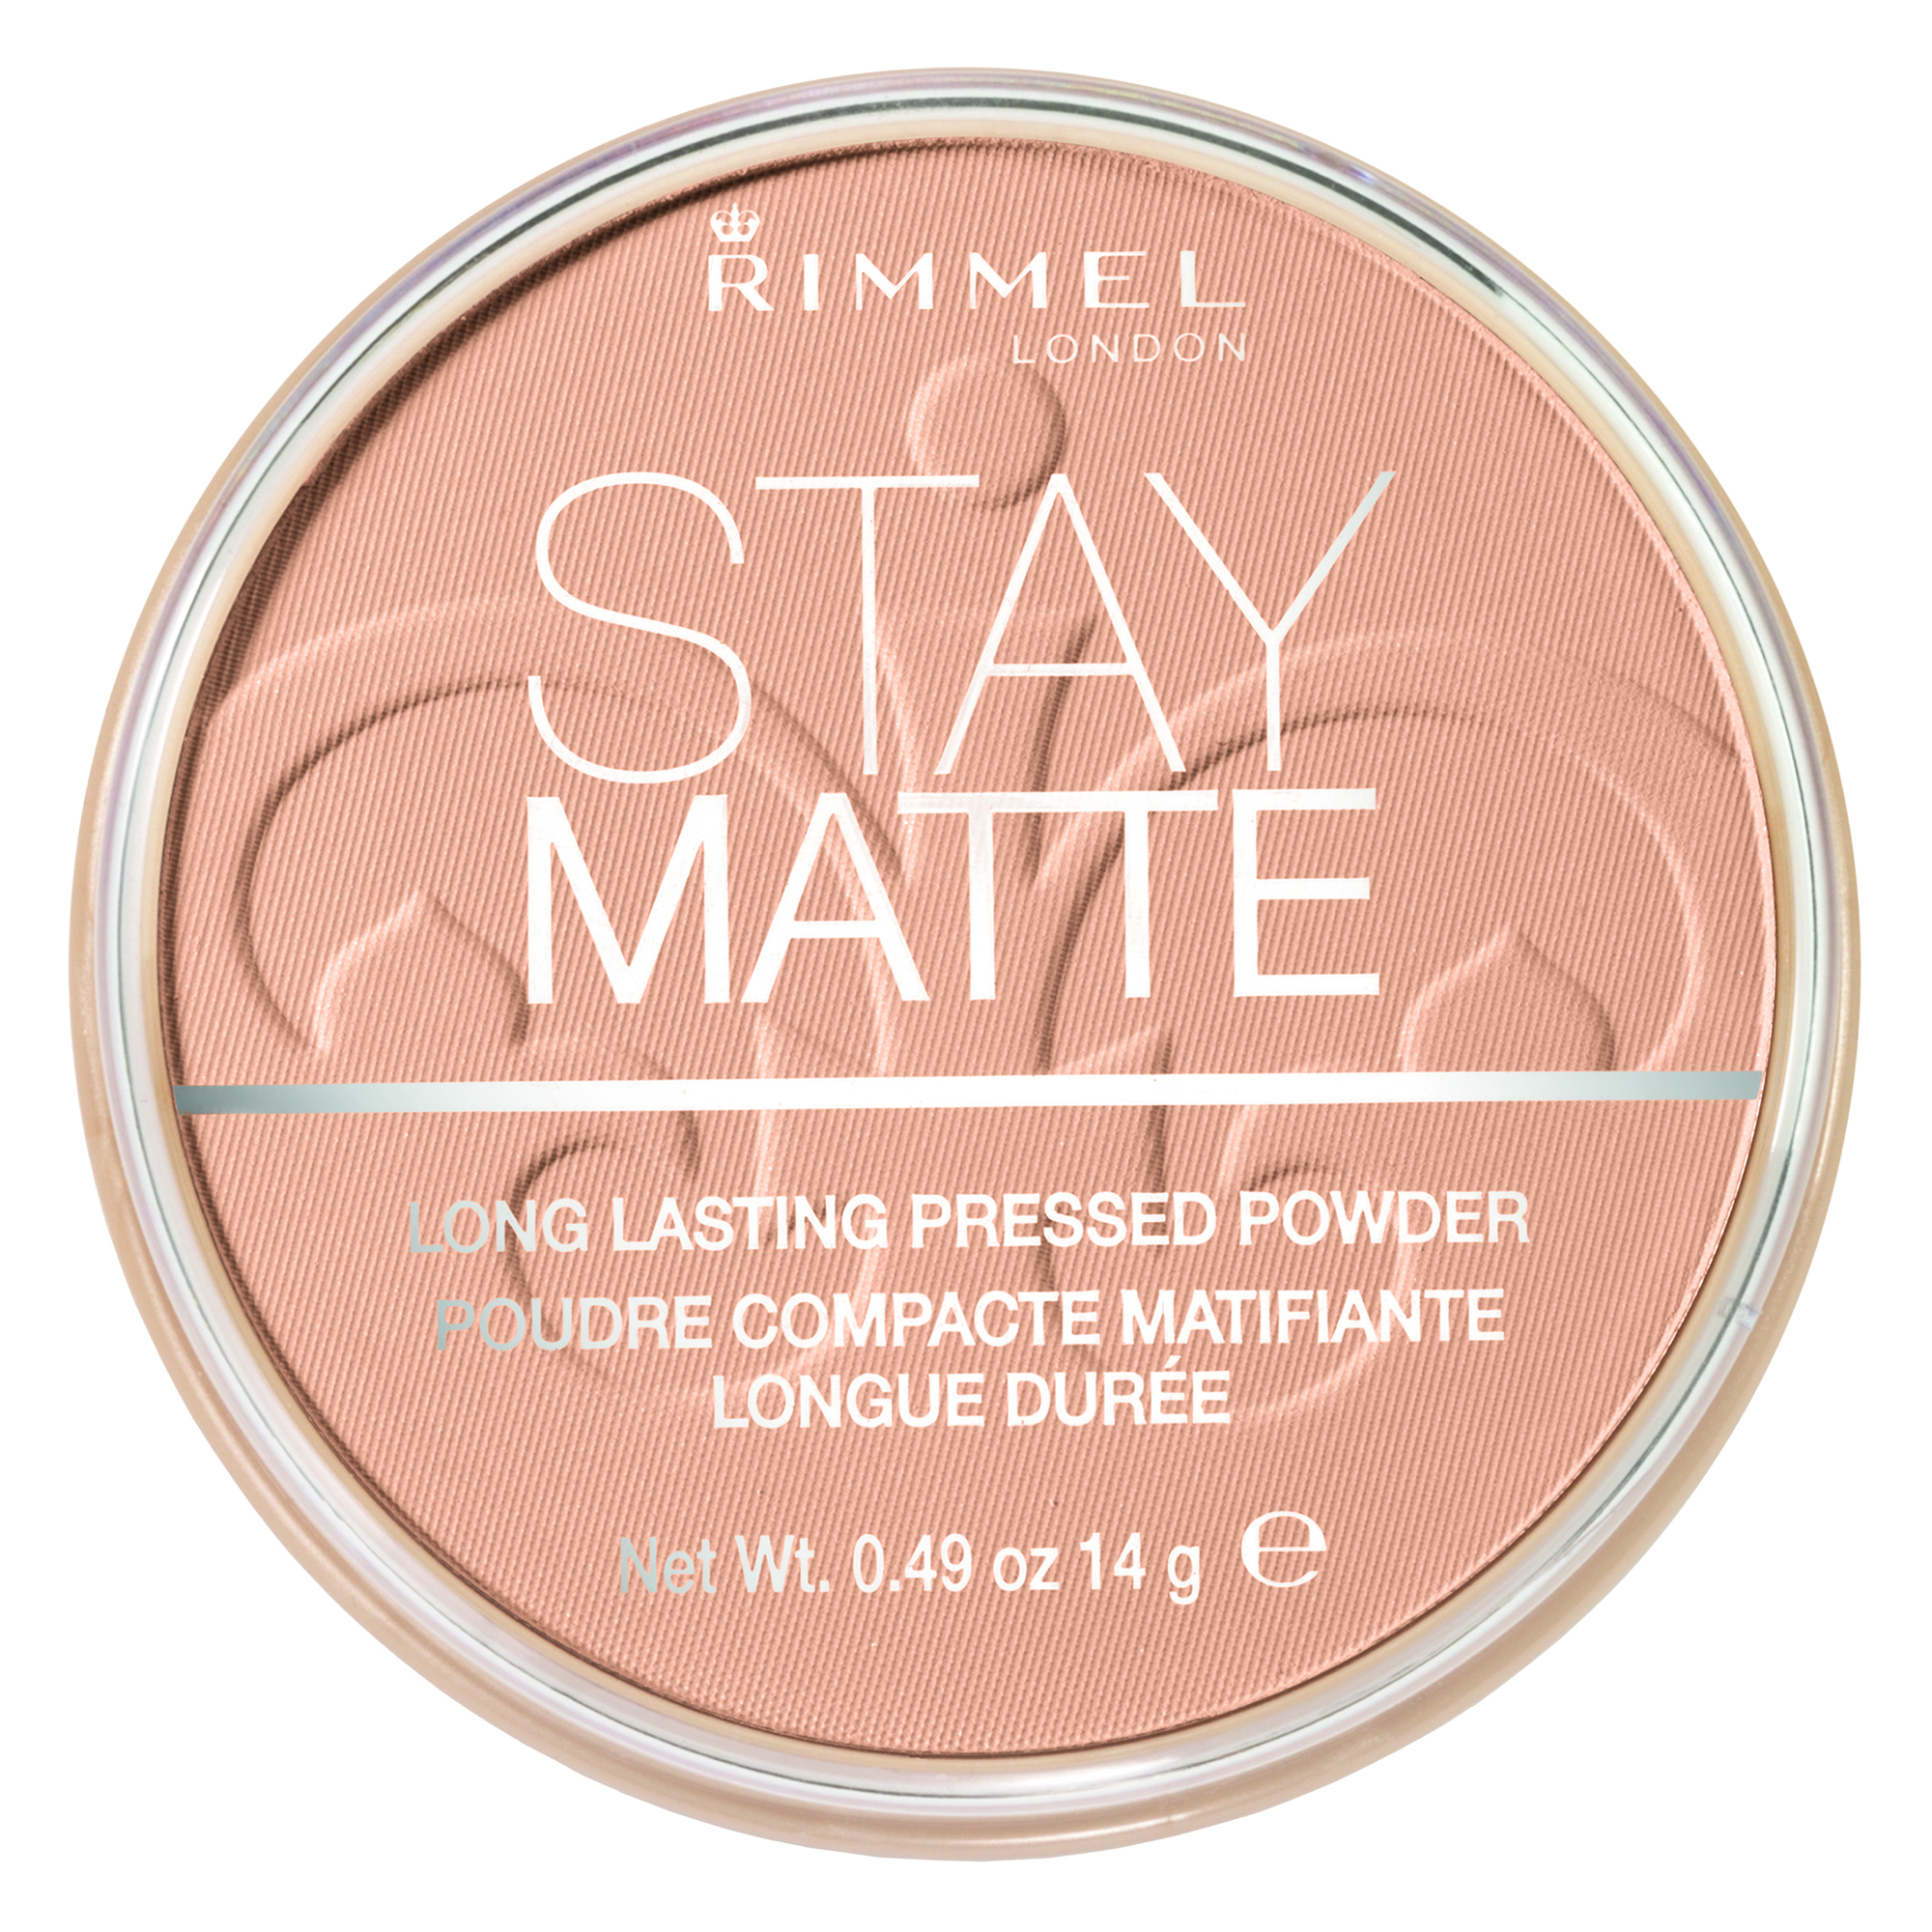 Rimmel Stay Matte Pressed Powder, Silky Beige